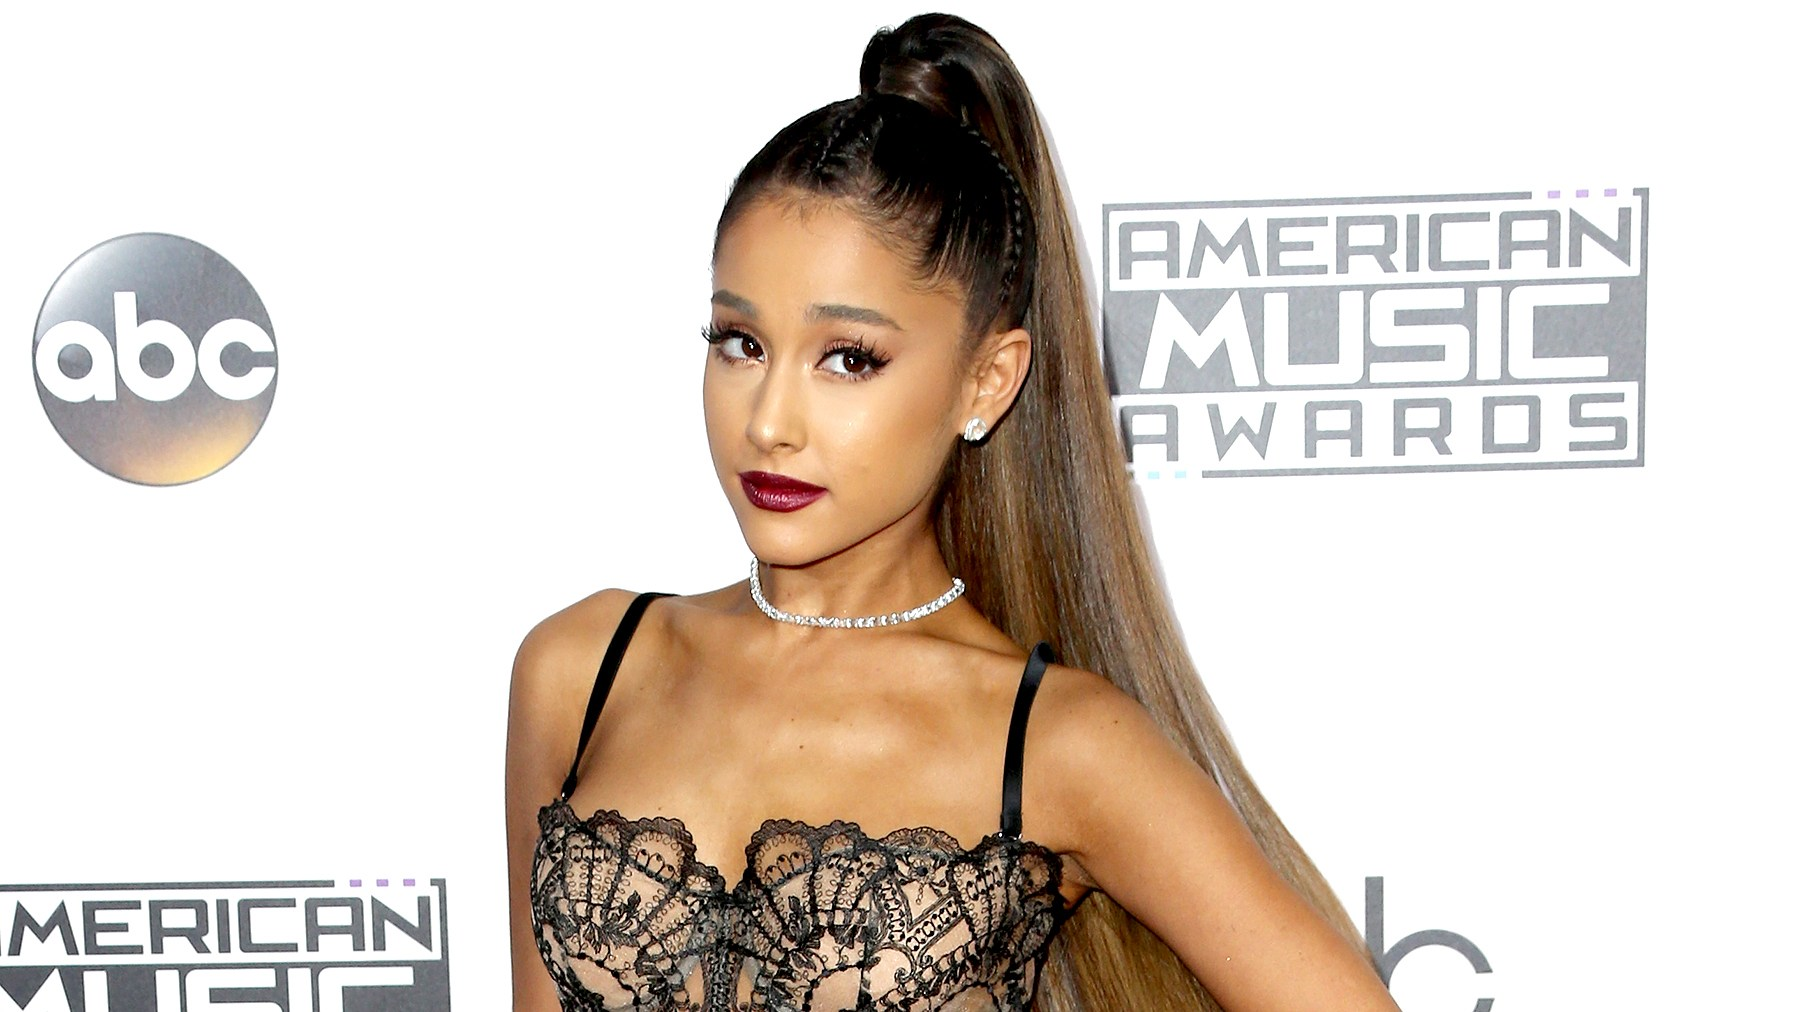 Ariana Grande attends the 2016 American Music Awards at Microsoft Theater on November 20, 2016 in Los Angeles, California.